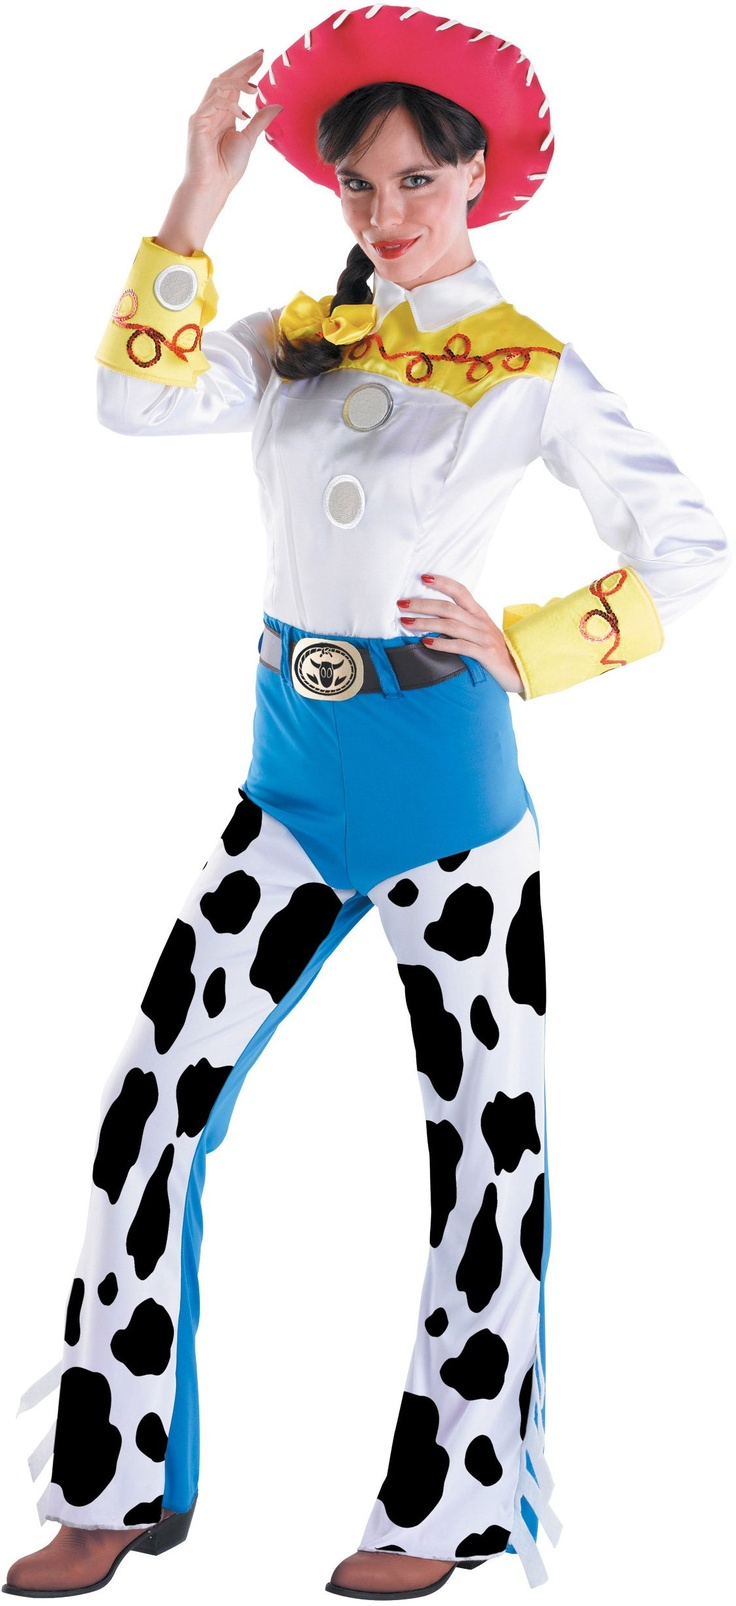 Jessie Toy Story Fancy Dress, Disney Licensed Costume - Toy Story Costumes at Escapade™ UK - Escapade Fancy Dress on Twitter: @Escapade_UK